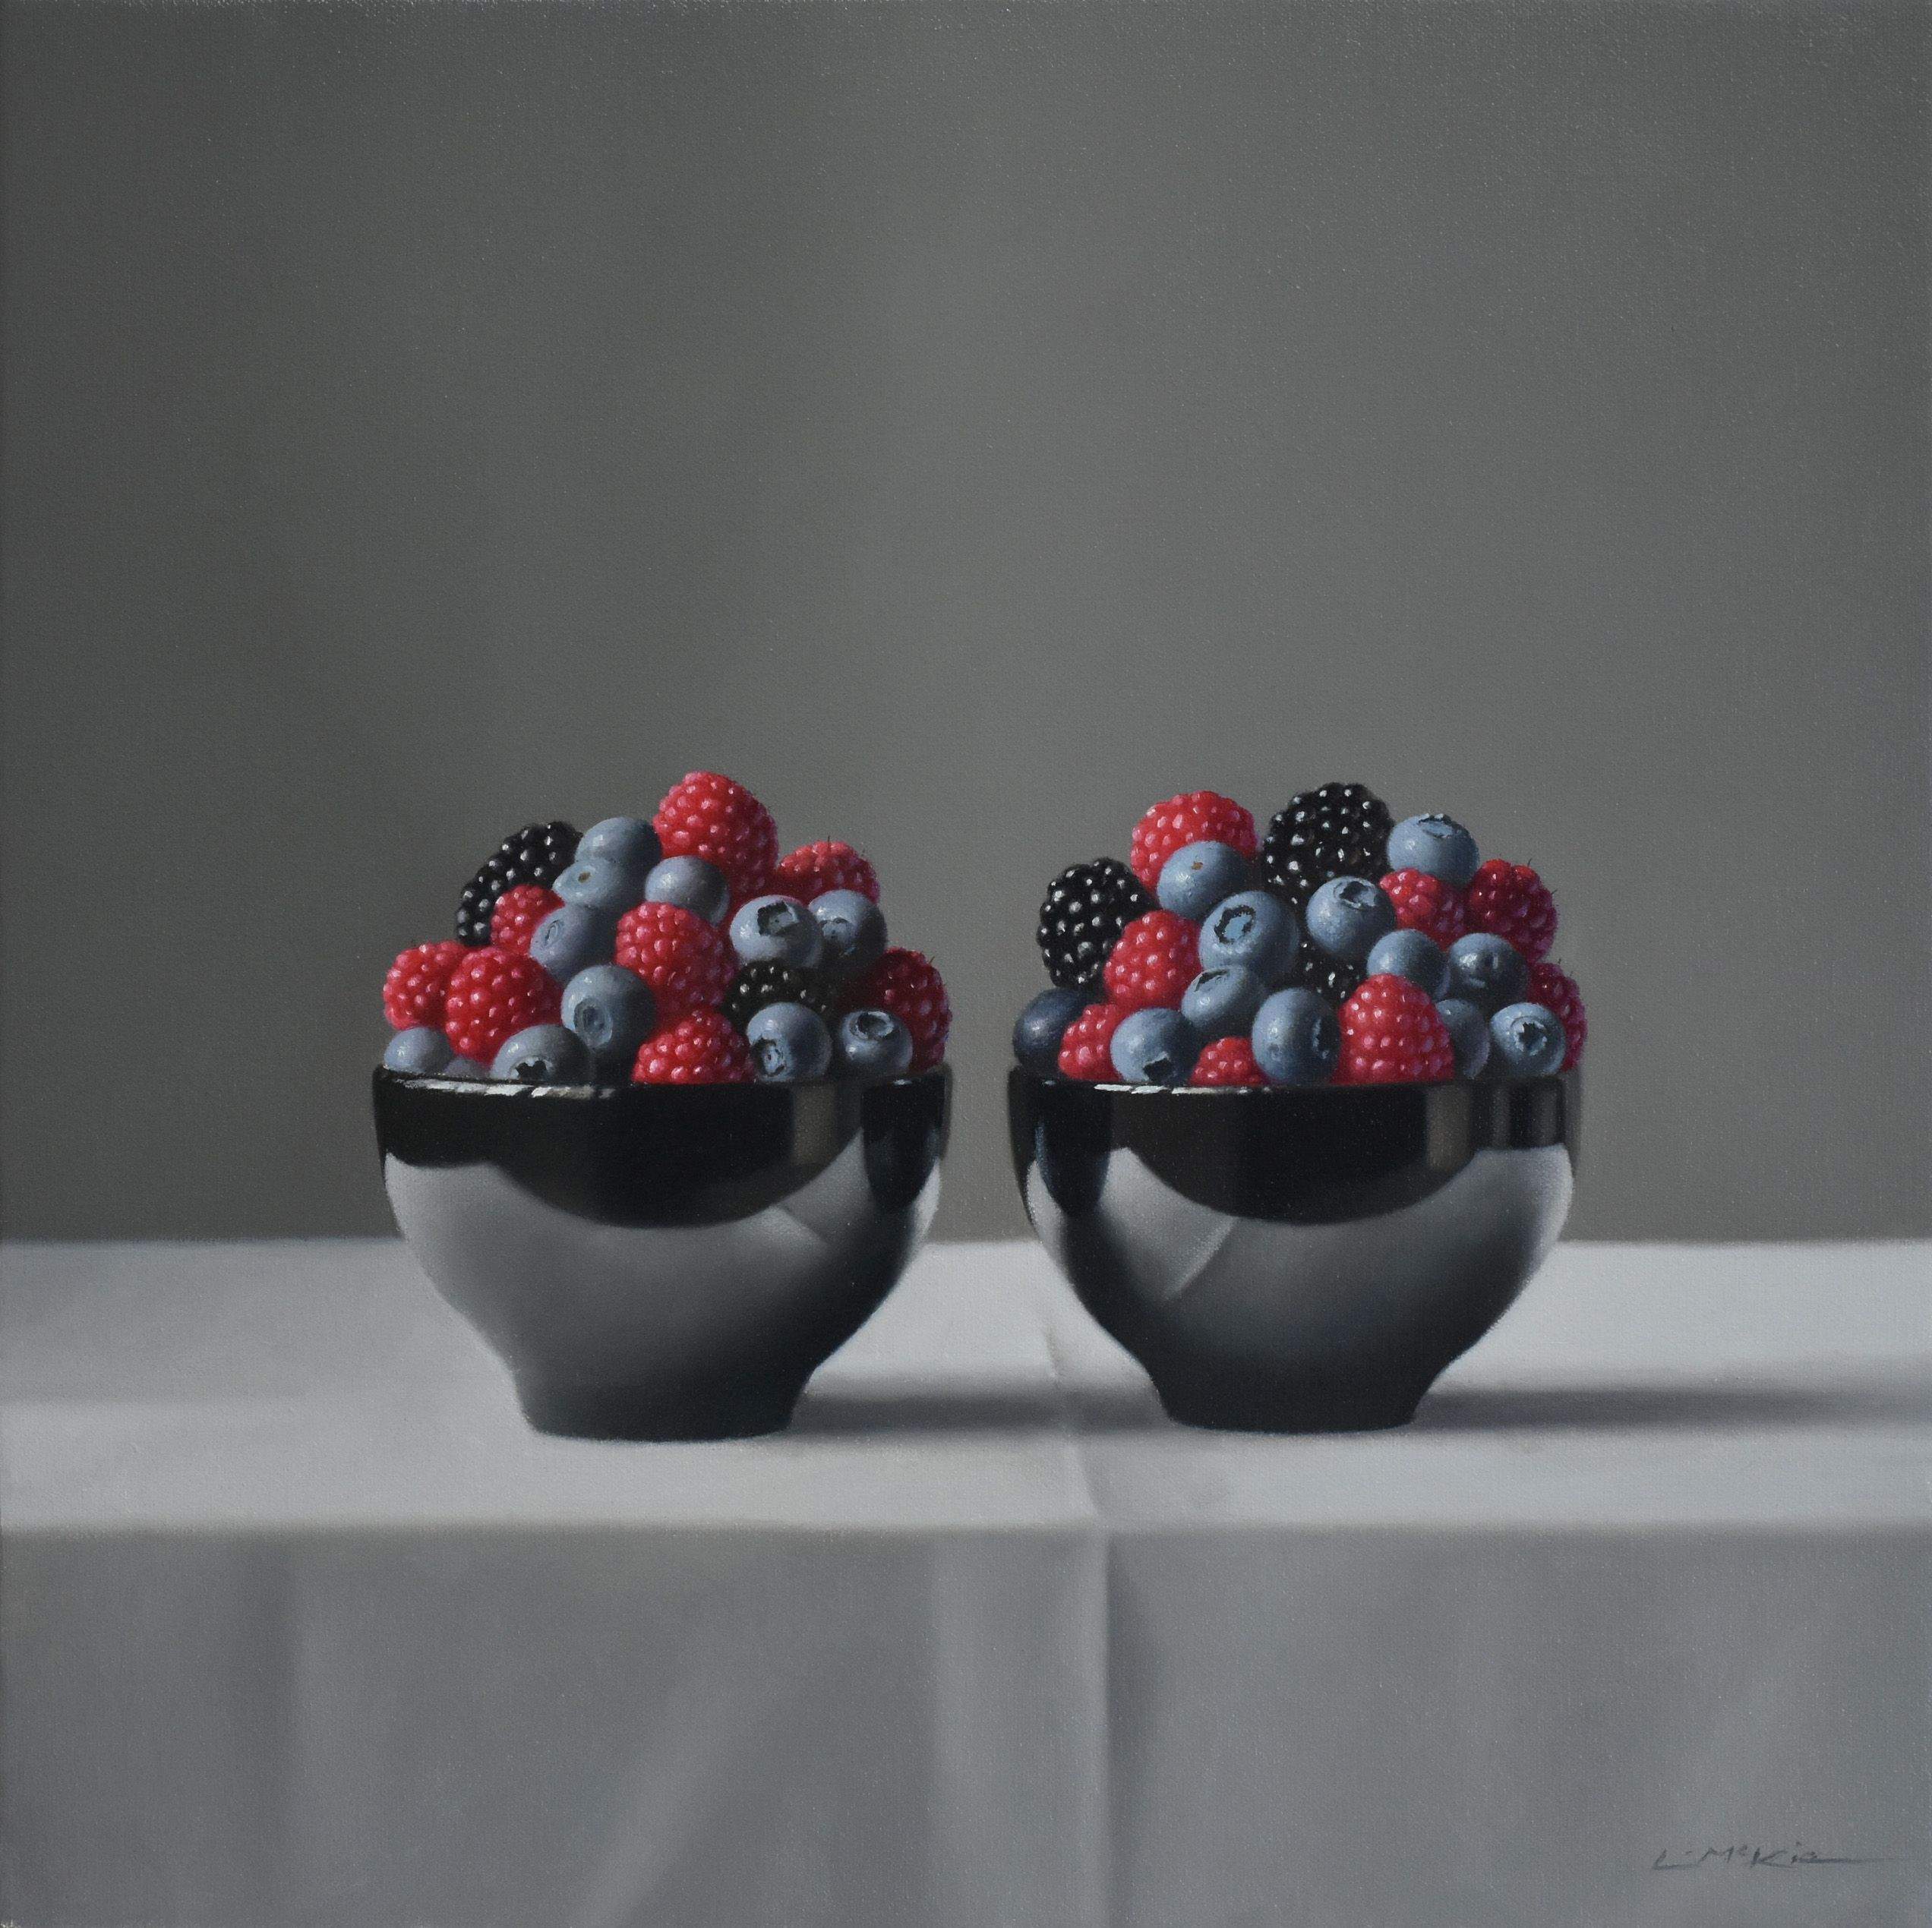 Black Bowls with Berries